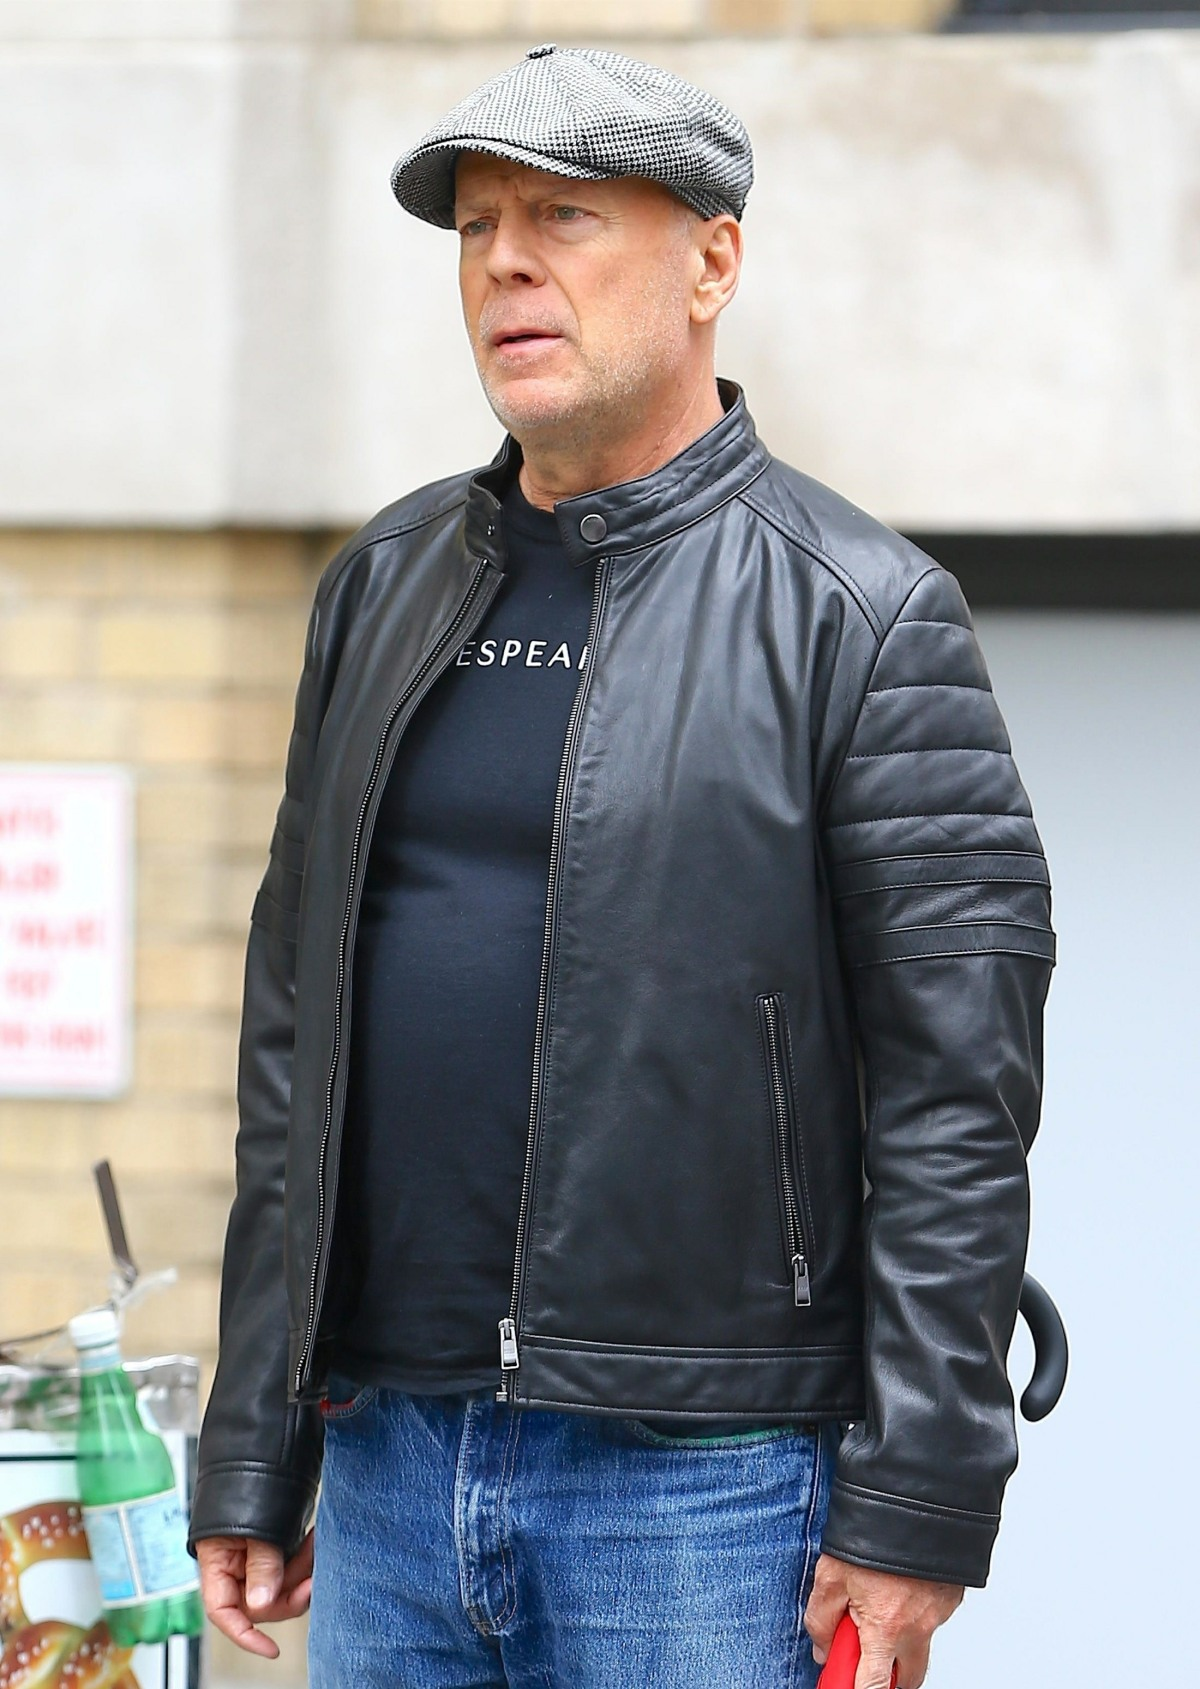 Bruce Willis cuts a casual figure in black leather jacket for outing in New York City